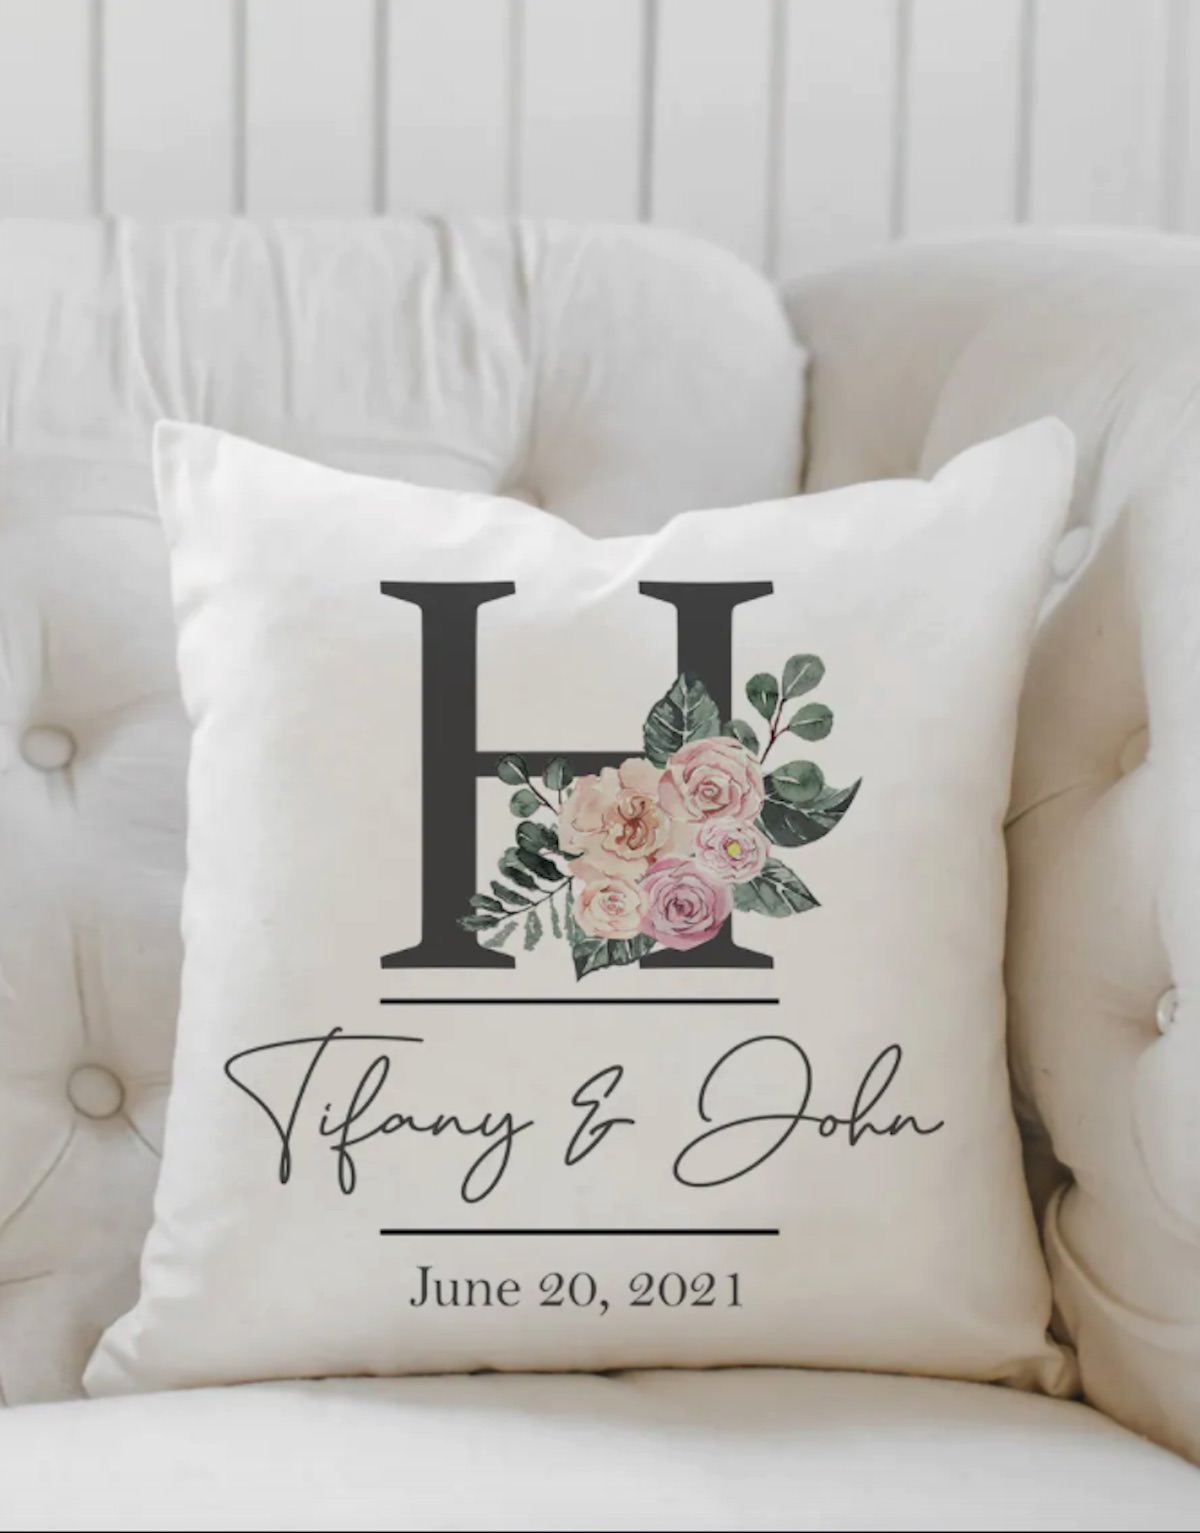 Personalized Couples Pillowcases - Cute Wedding Gift